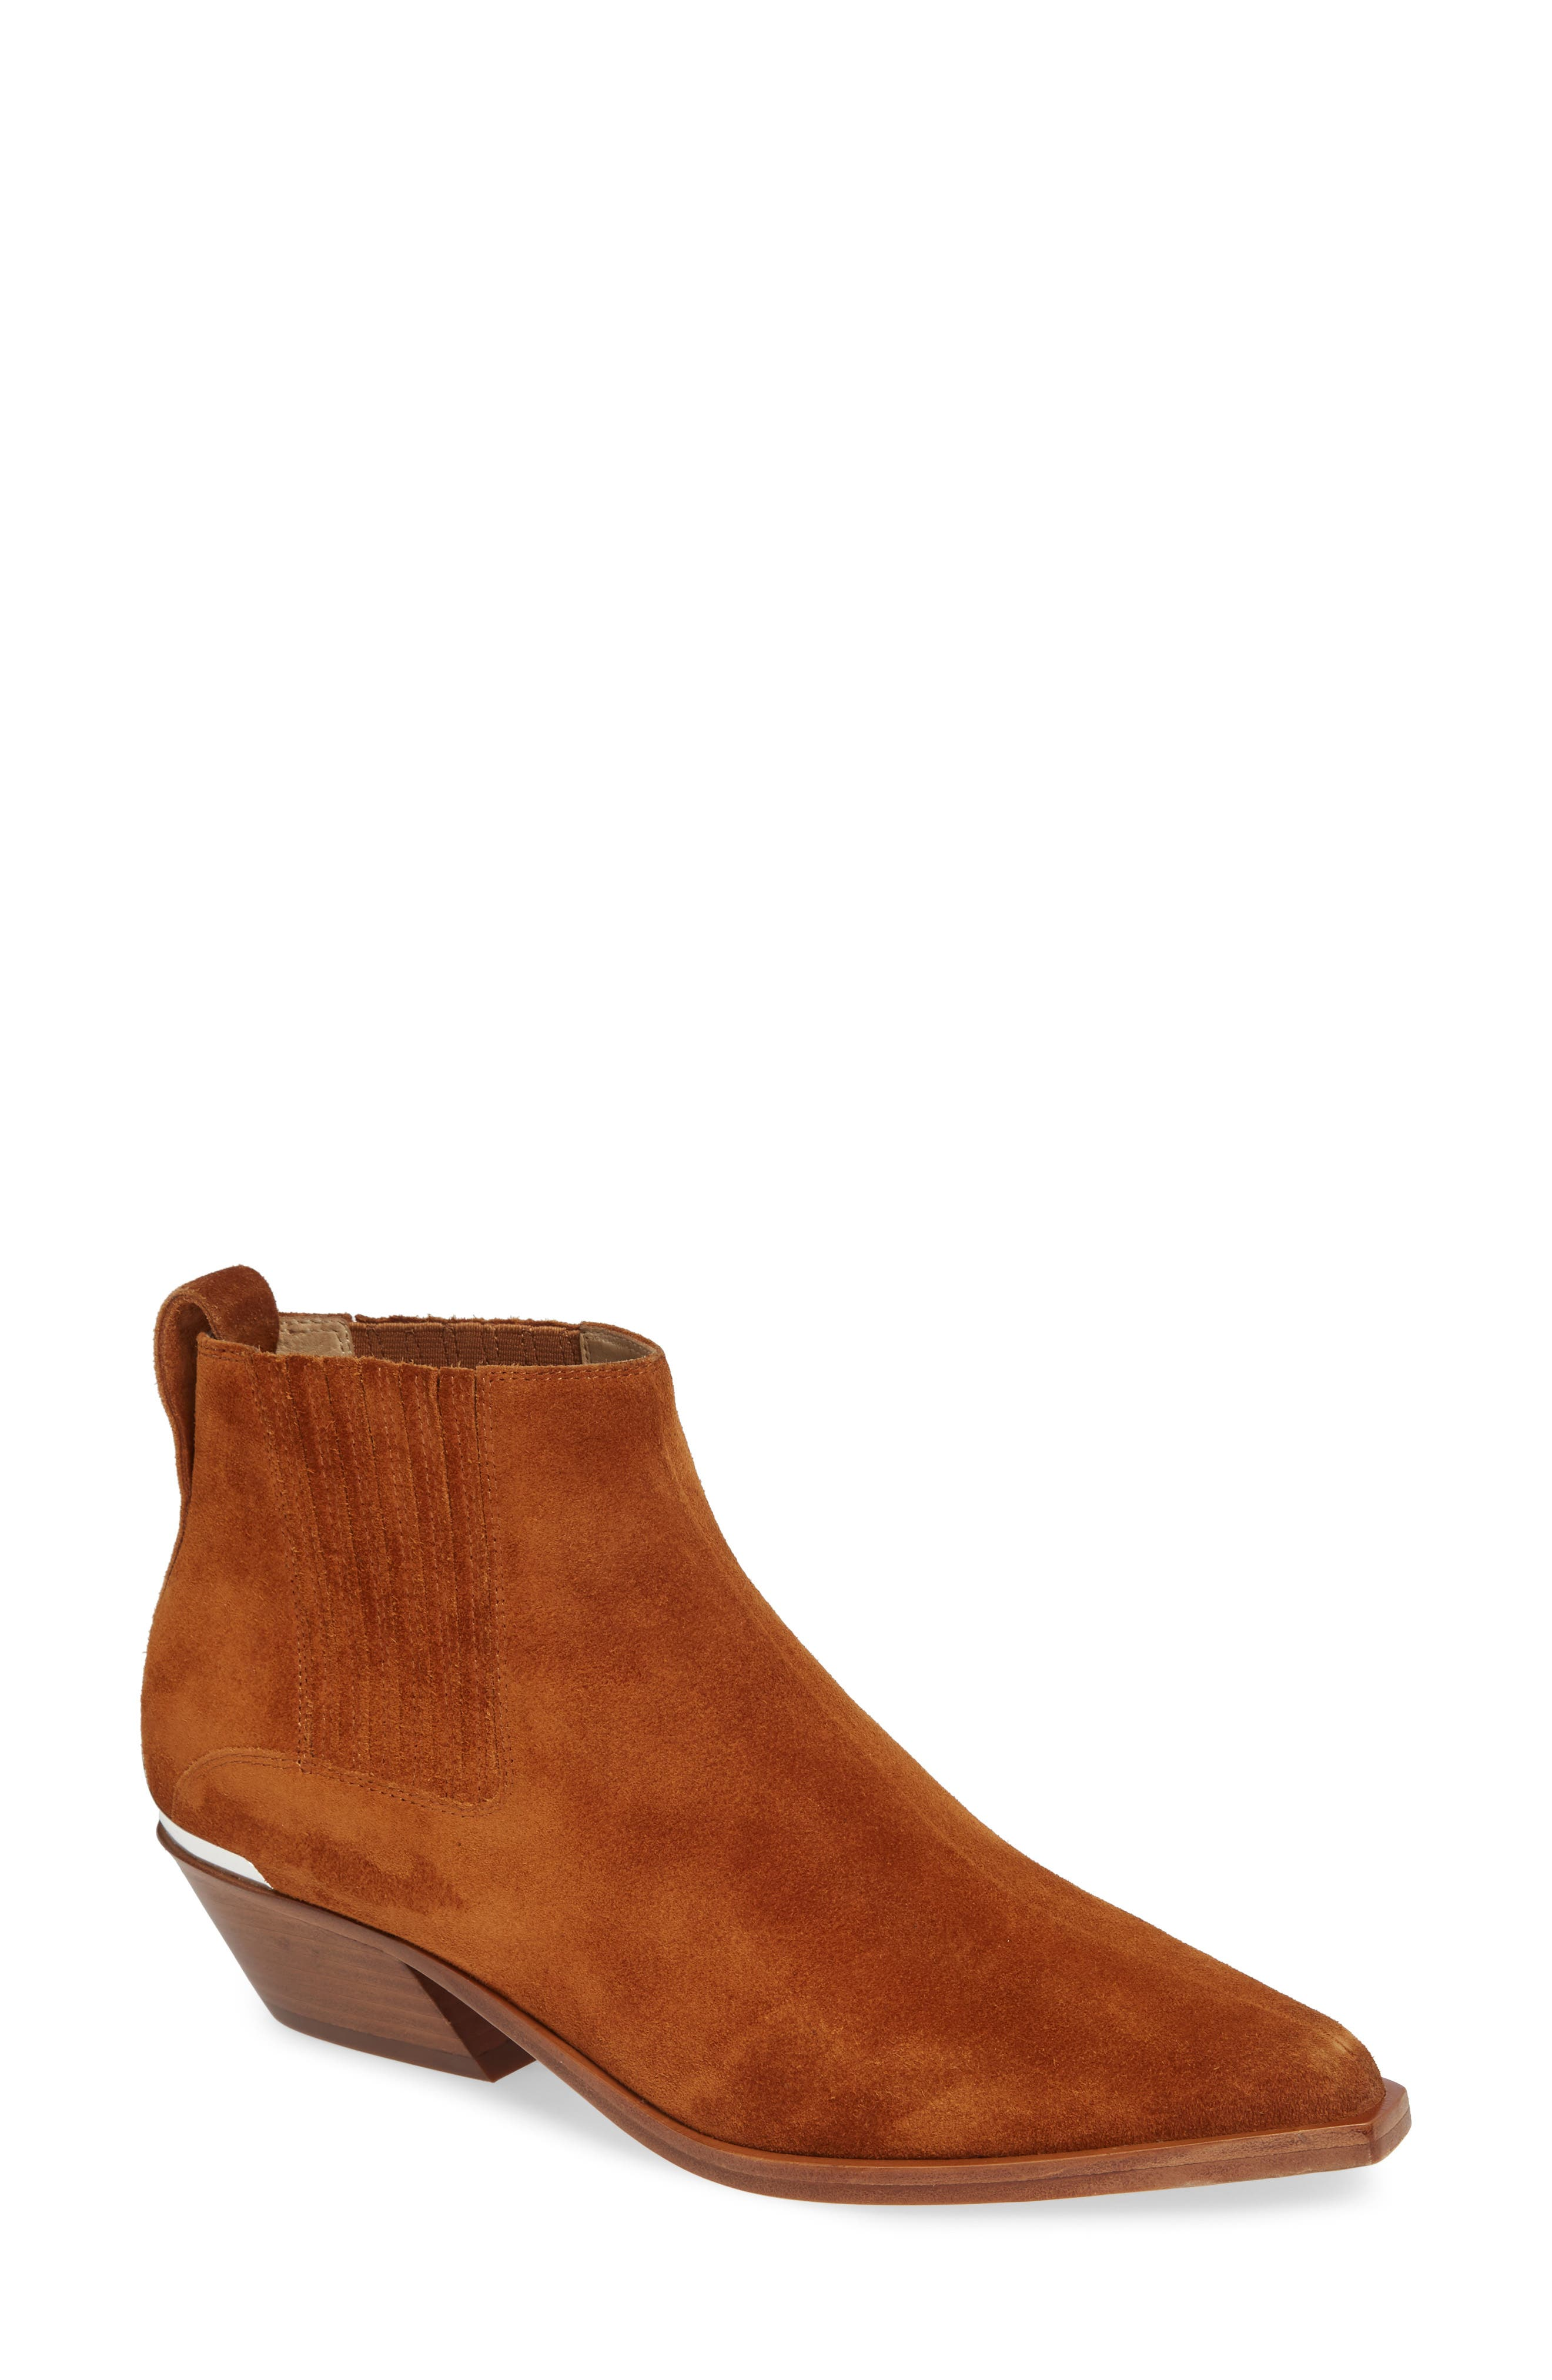 Westin Bootie,                             Main thumbnail 1, color,                             TAN SUEDE